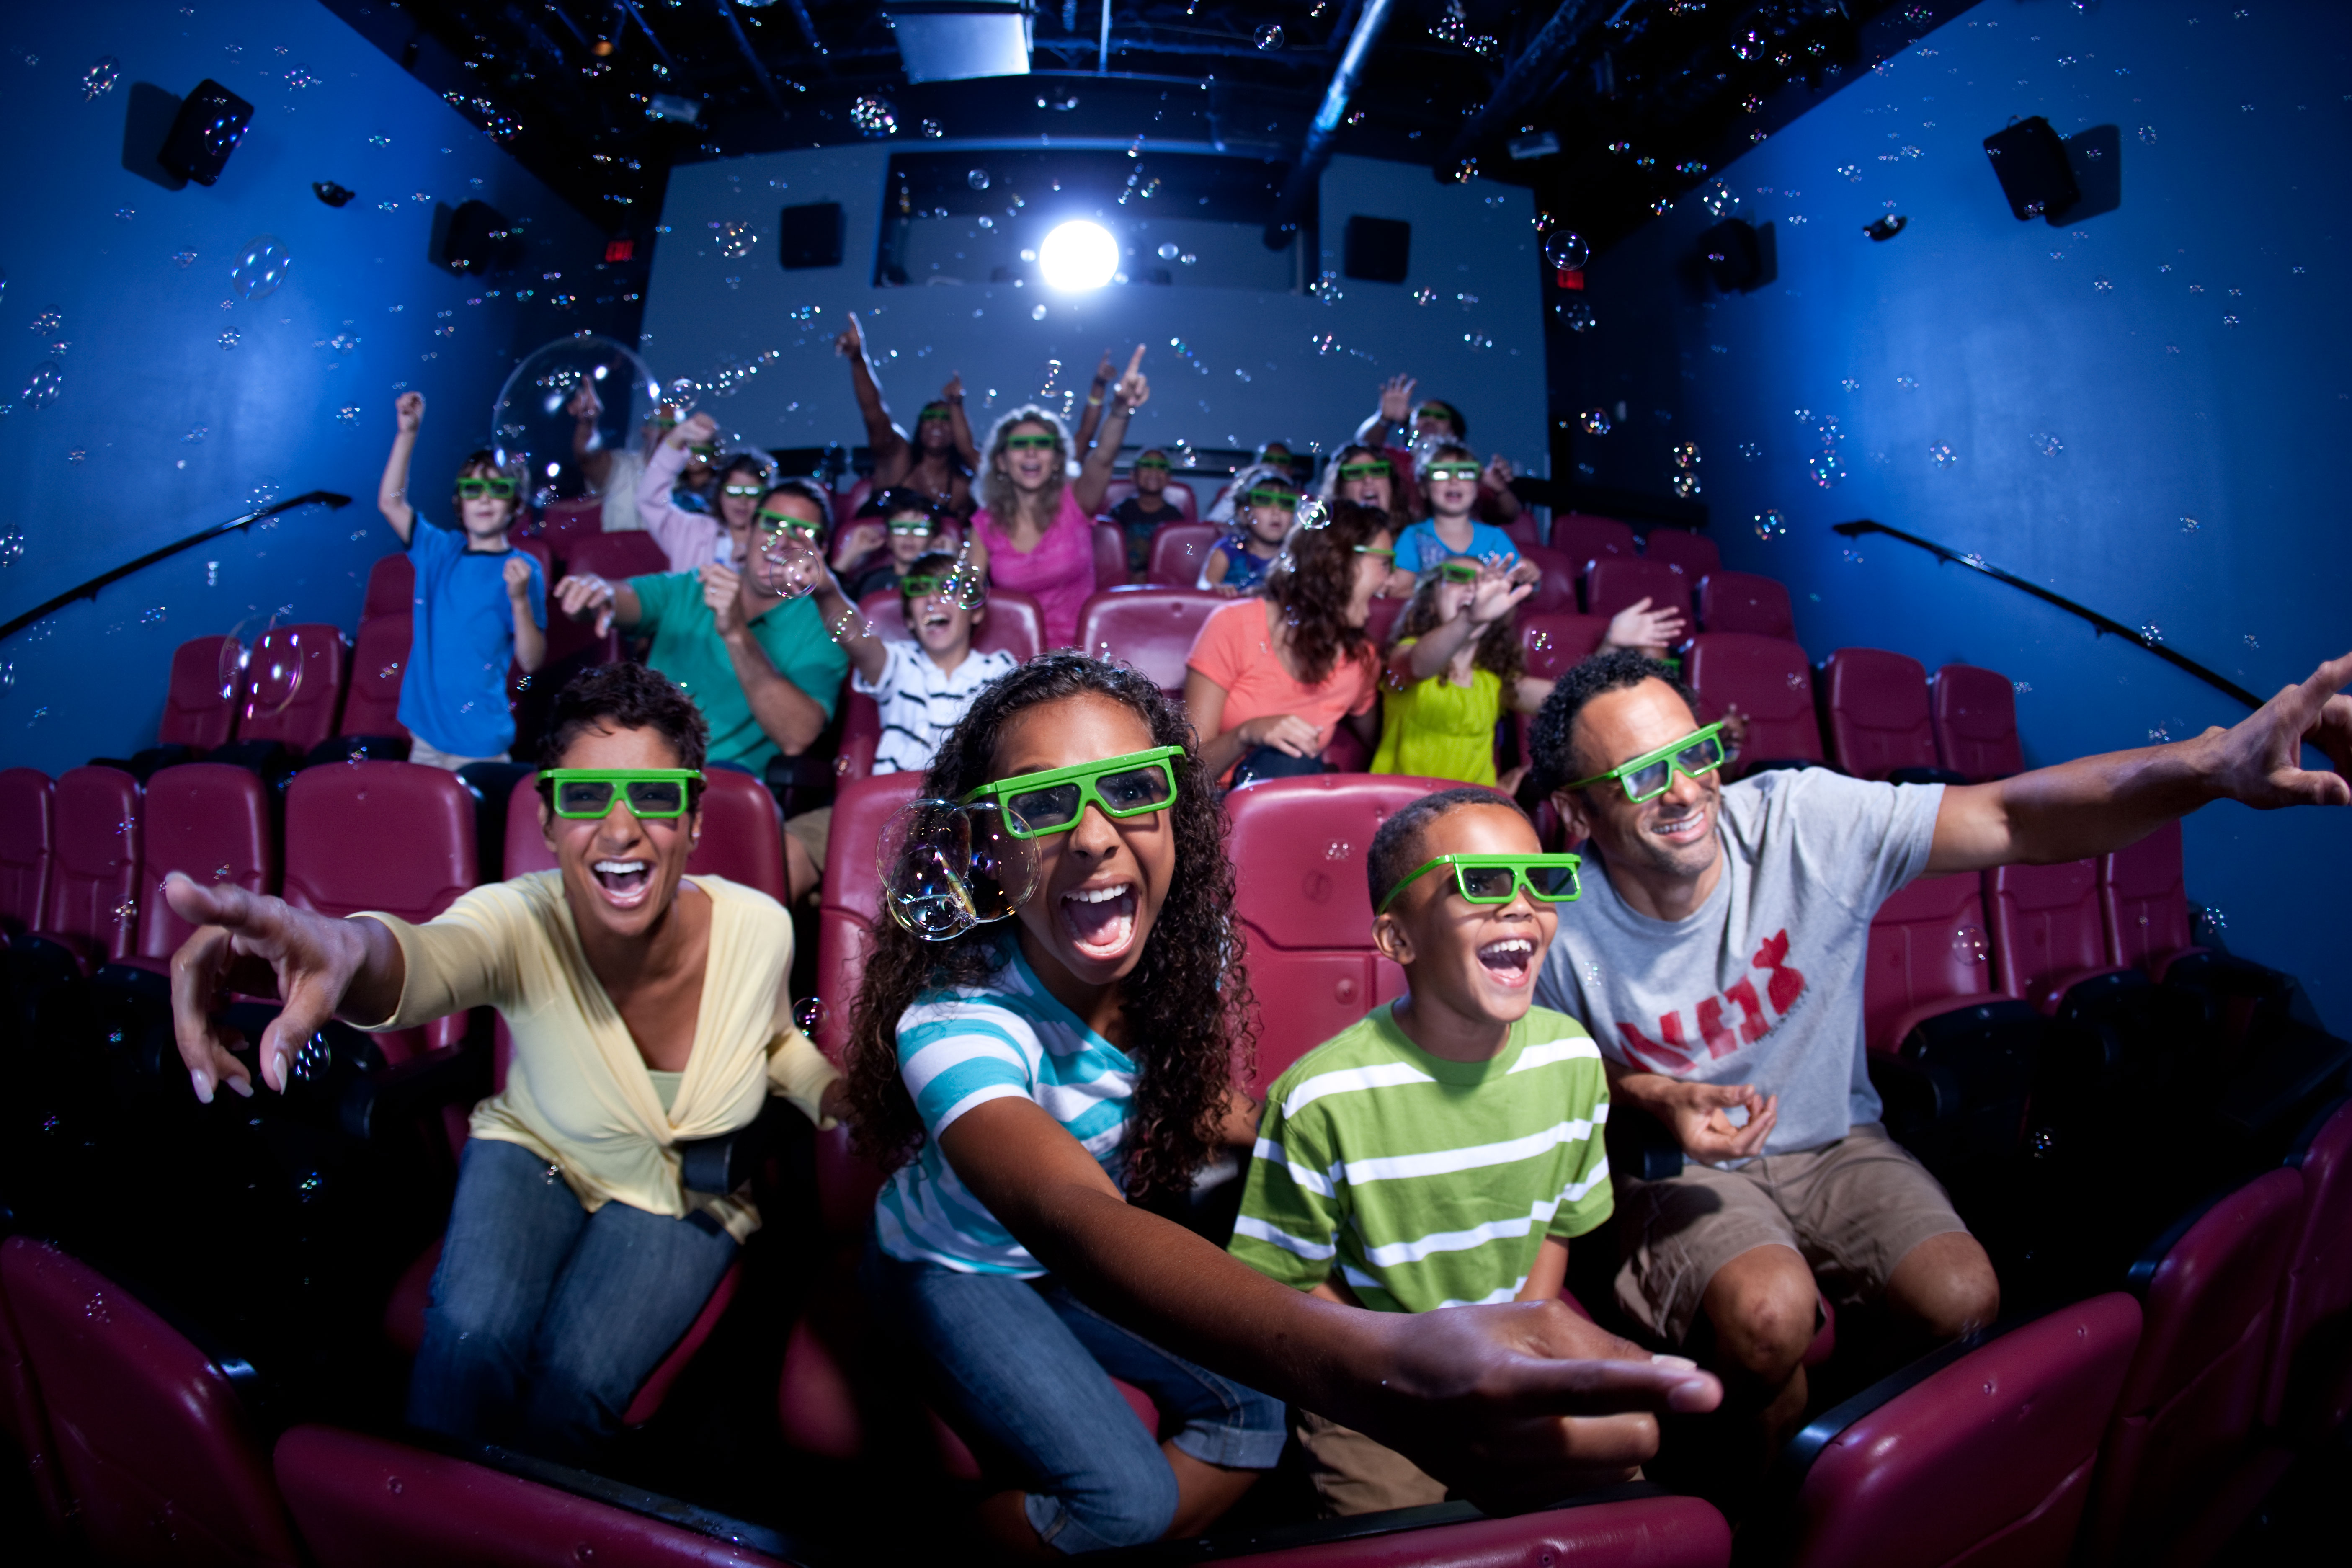 americas first 4d theater opens this summer and heres